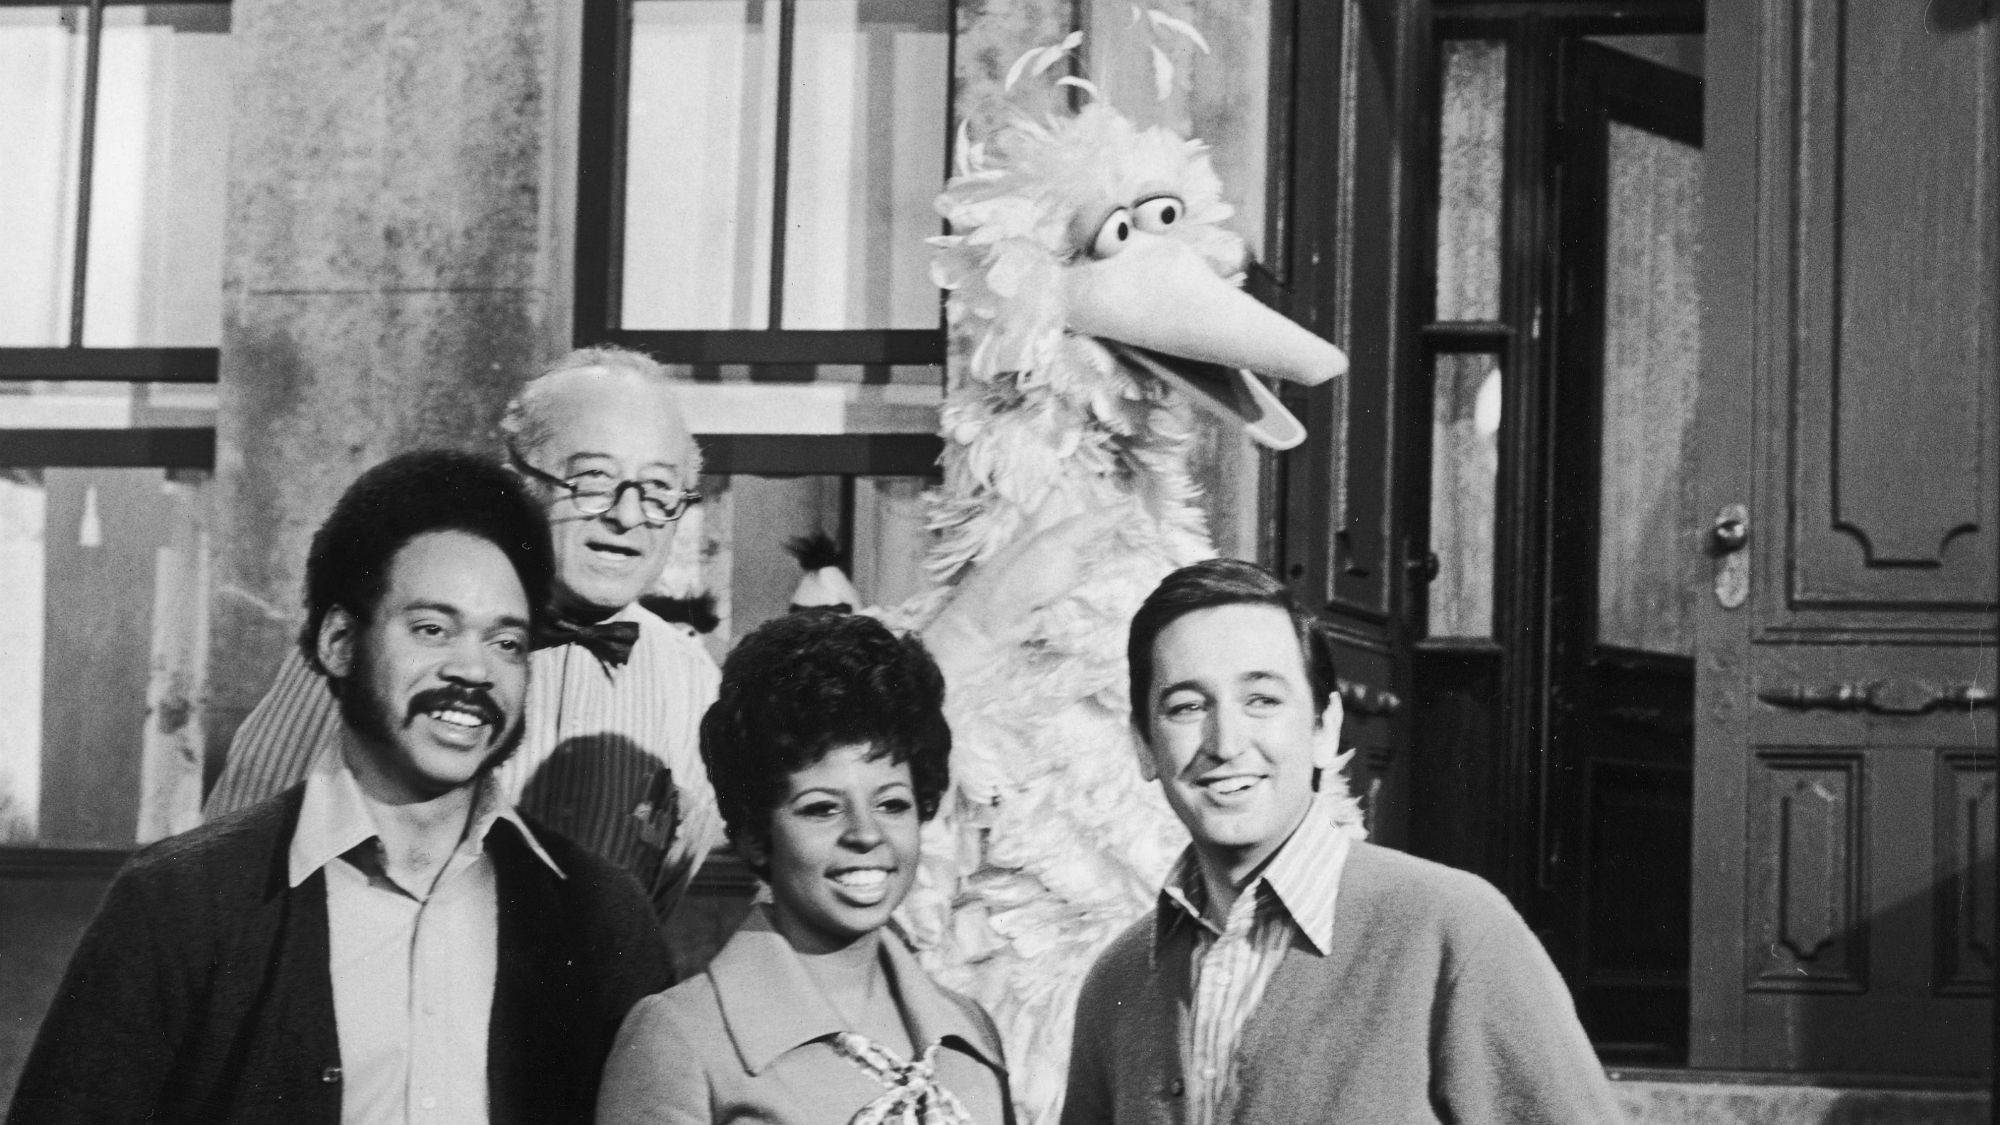 'Sesame Street' Controversial Early Episodes